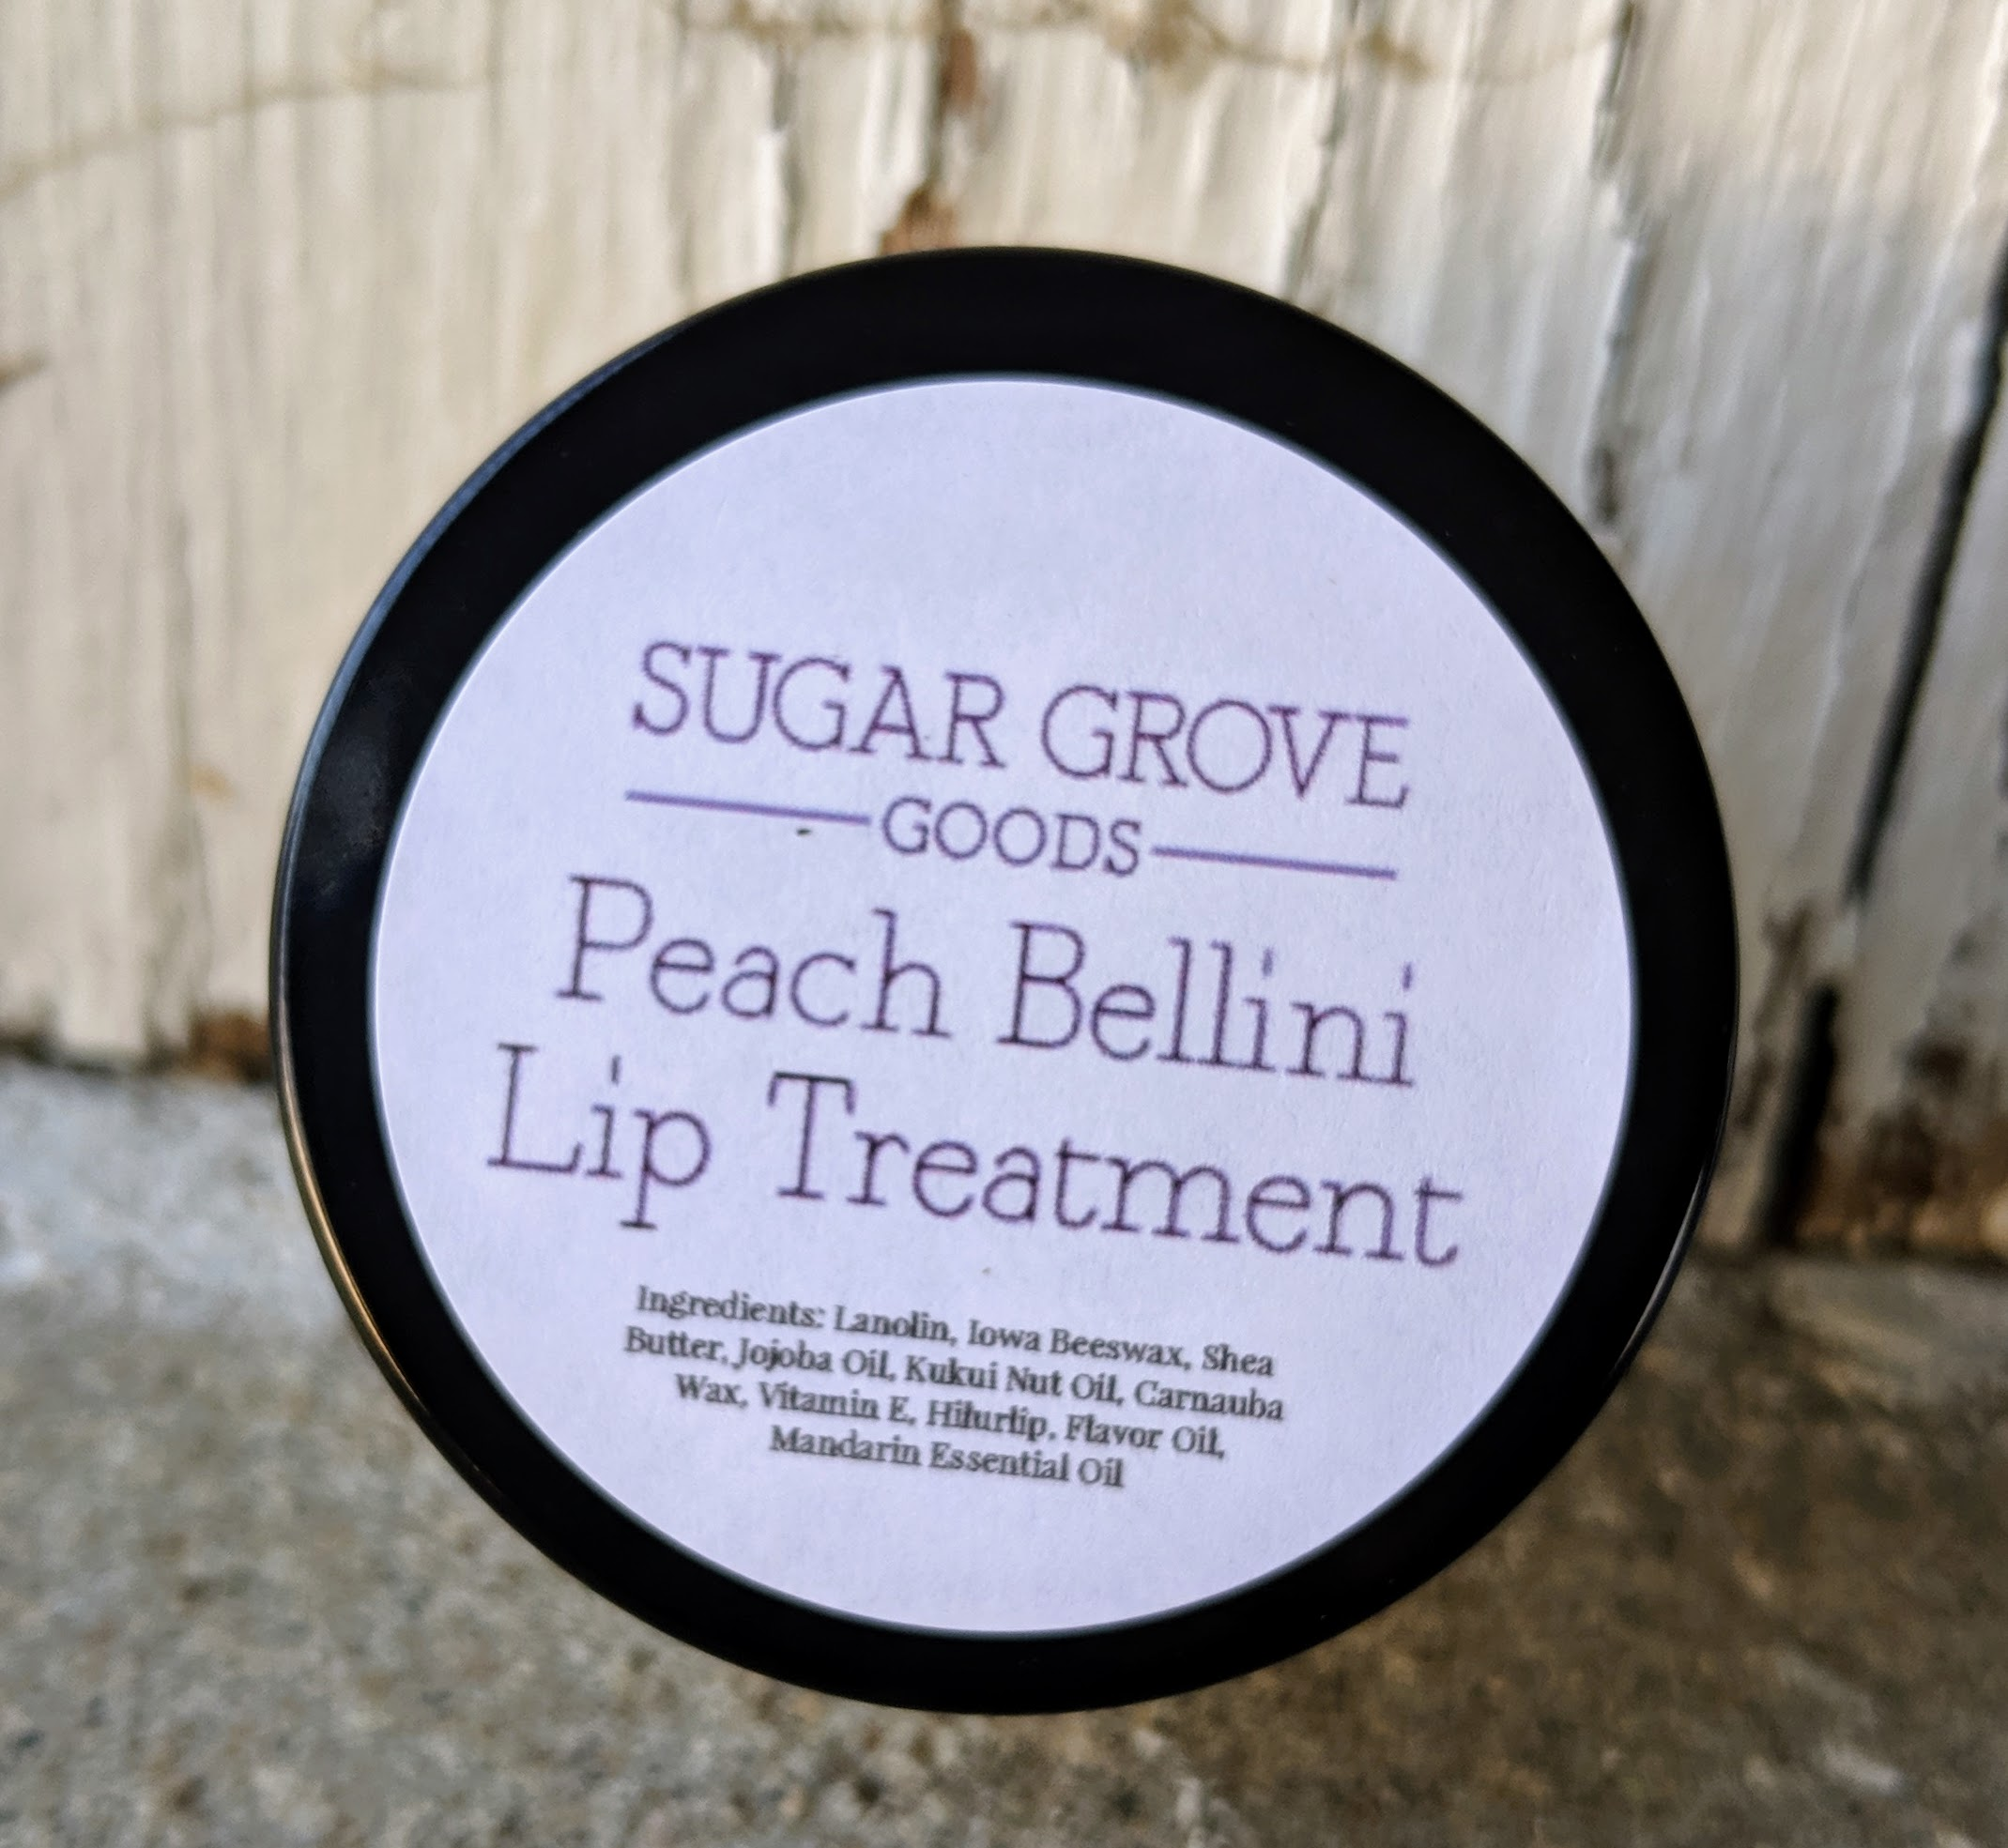 Peach Bellini Lip Treatment